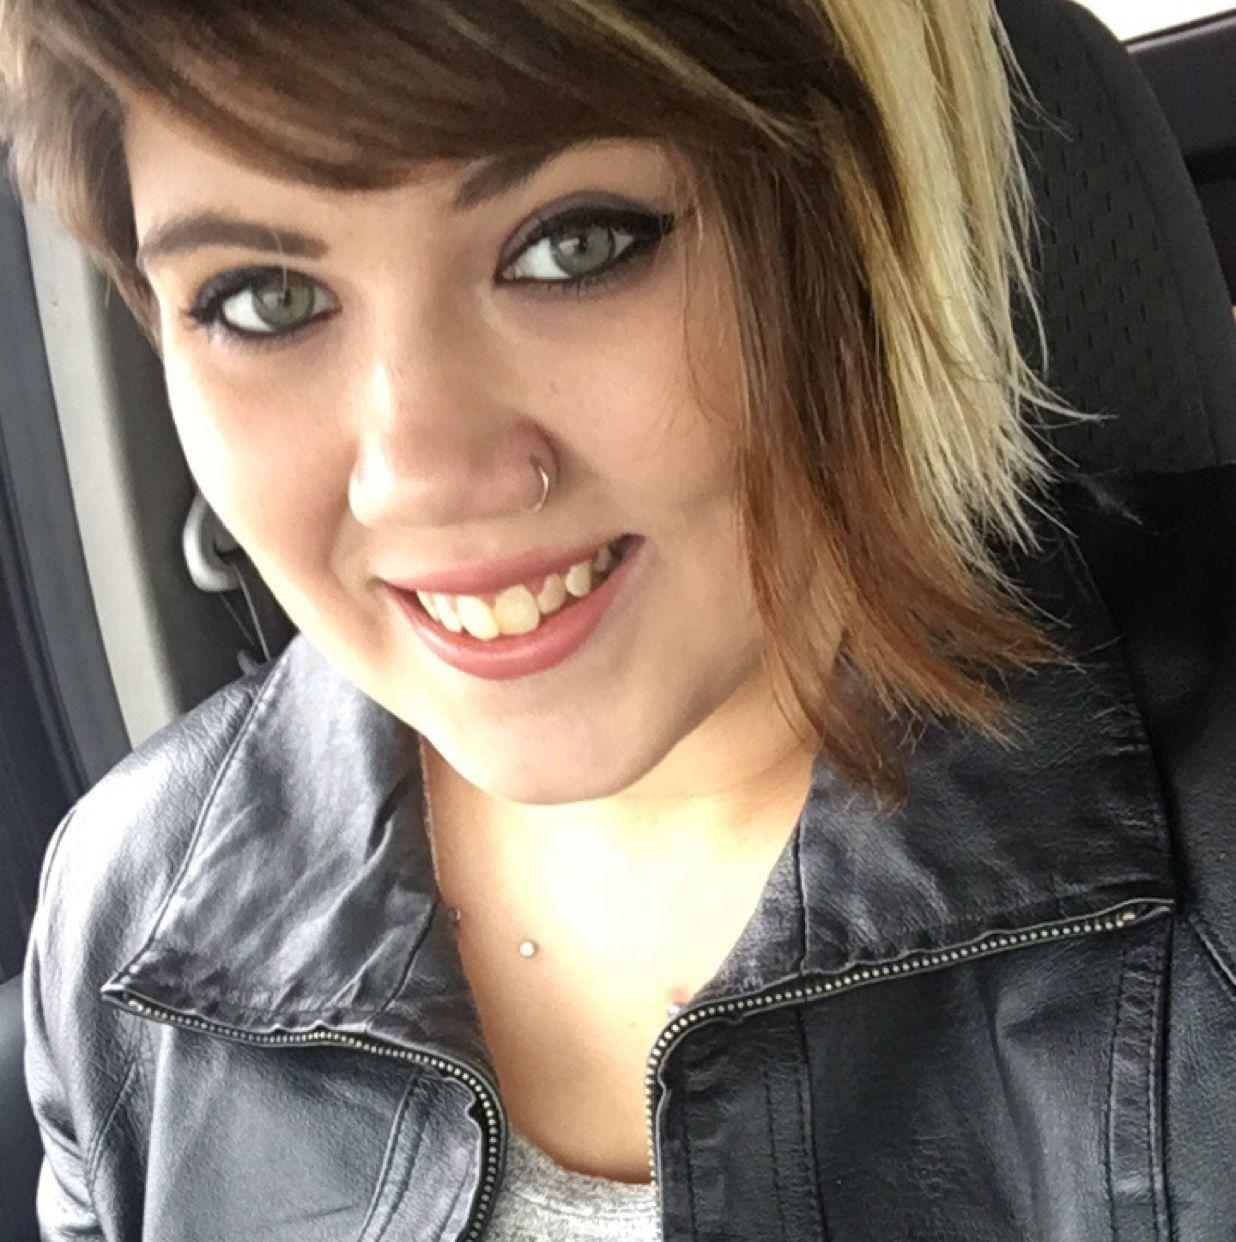 cuyahoga falls asian single women Find a girlfriend or lover in cuyahoga falls, or just have fun flirting online with cuyahoga falls single girls  cuyahoga falls asian dating .